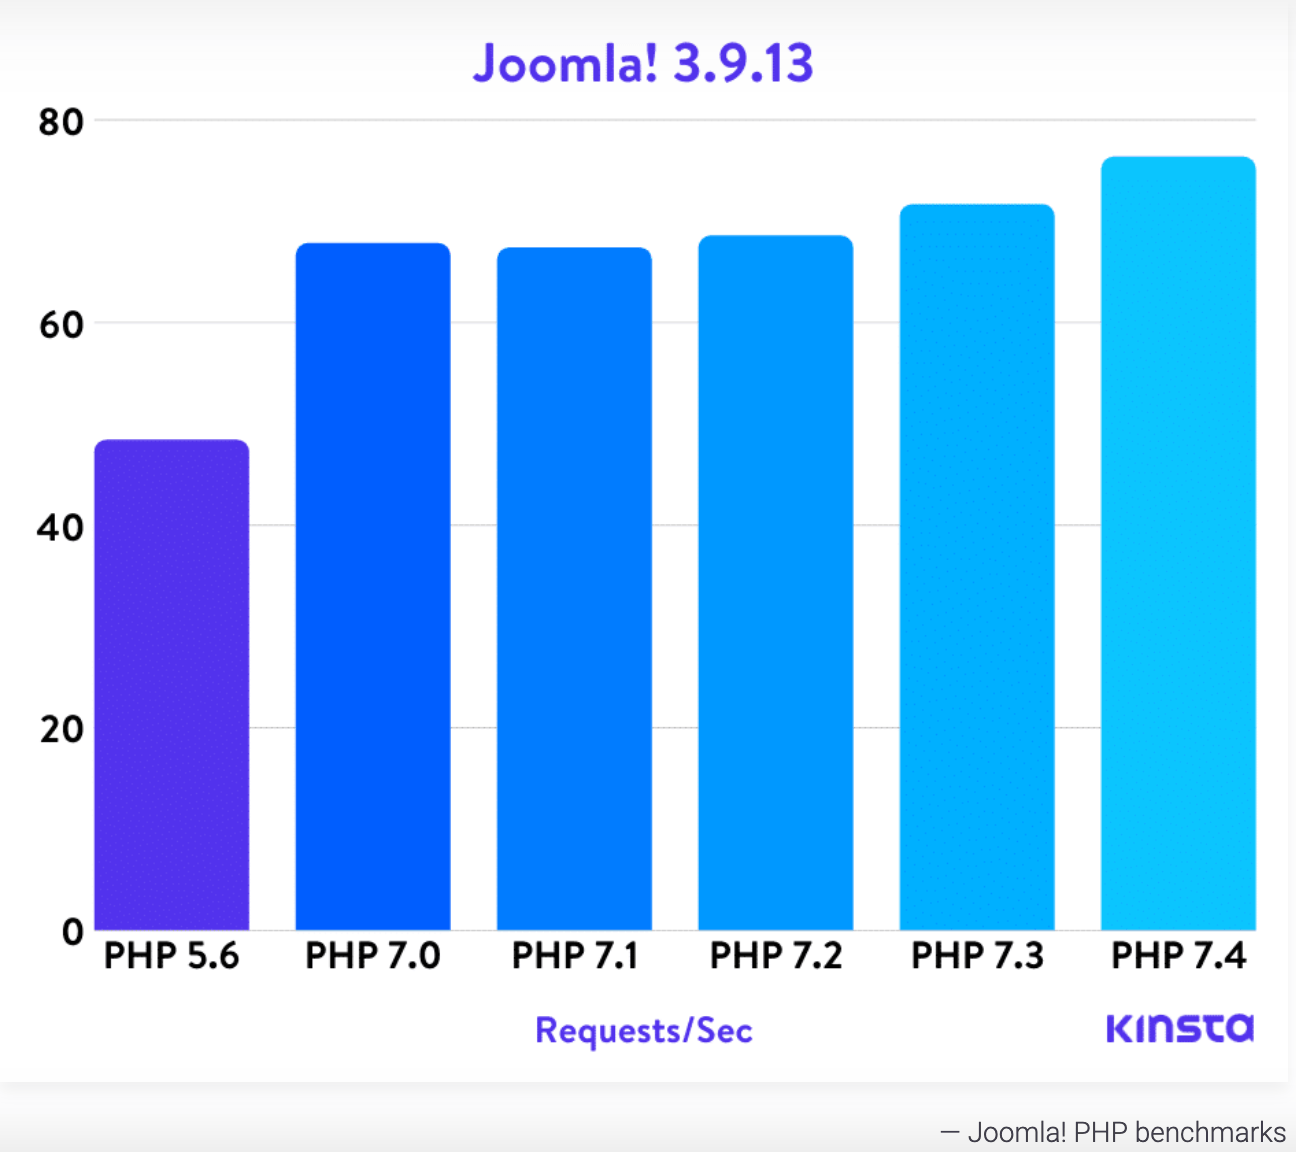 Kinsta test on PHP benchmark